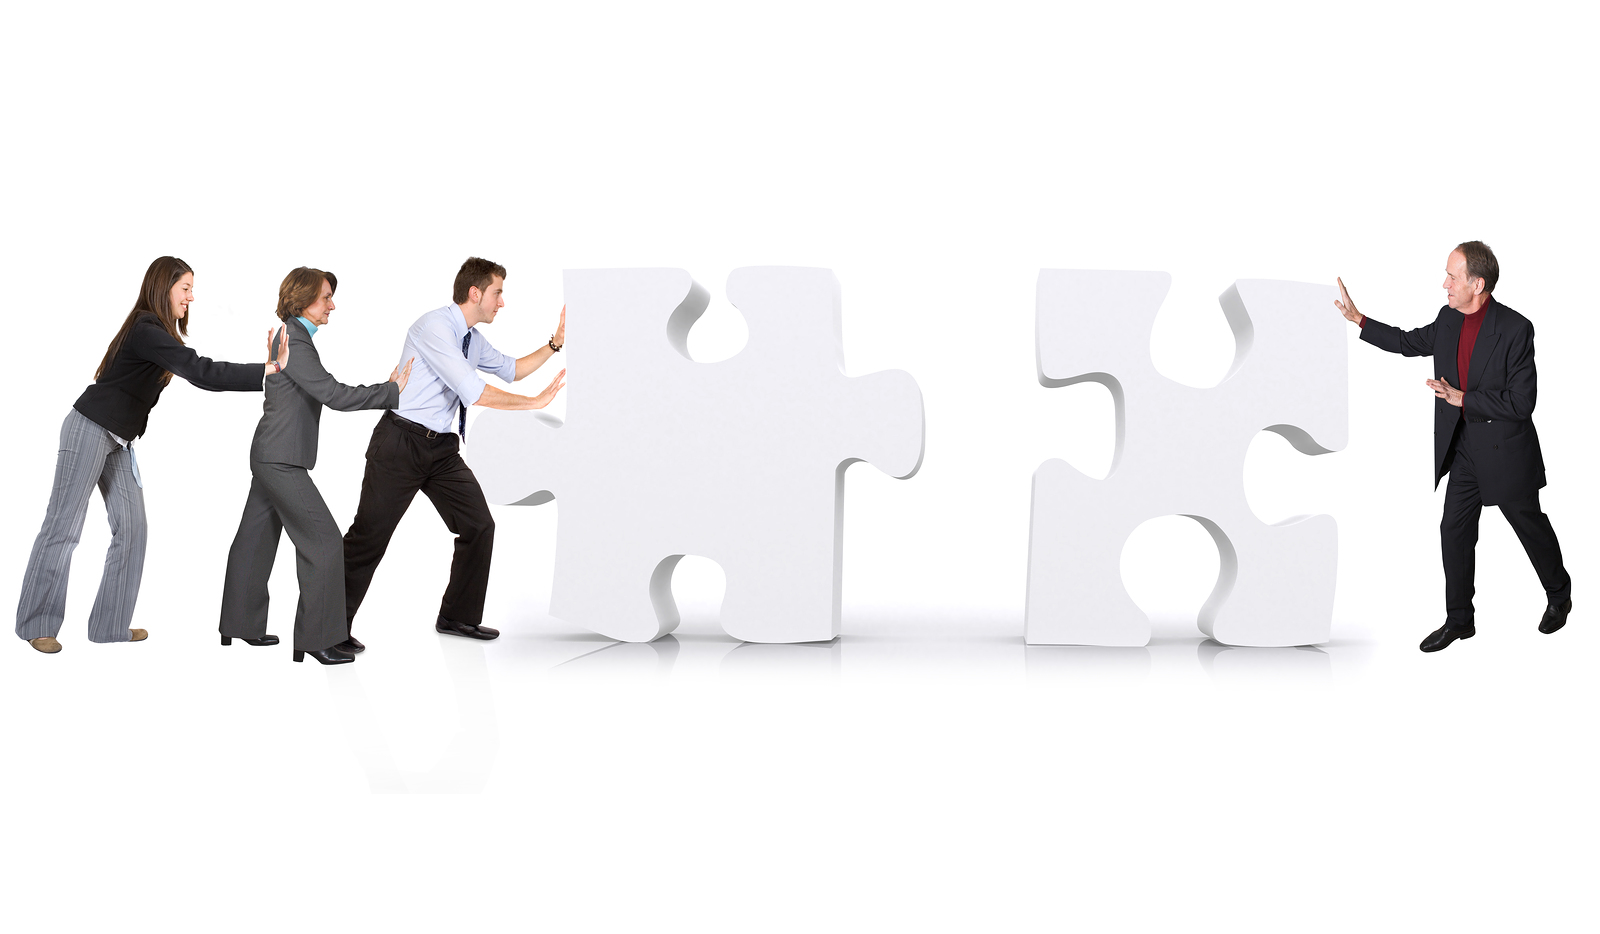 The importance of teamwork in business